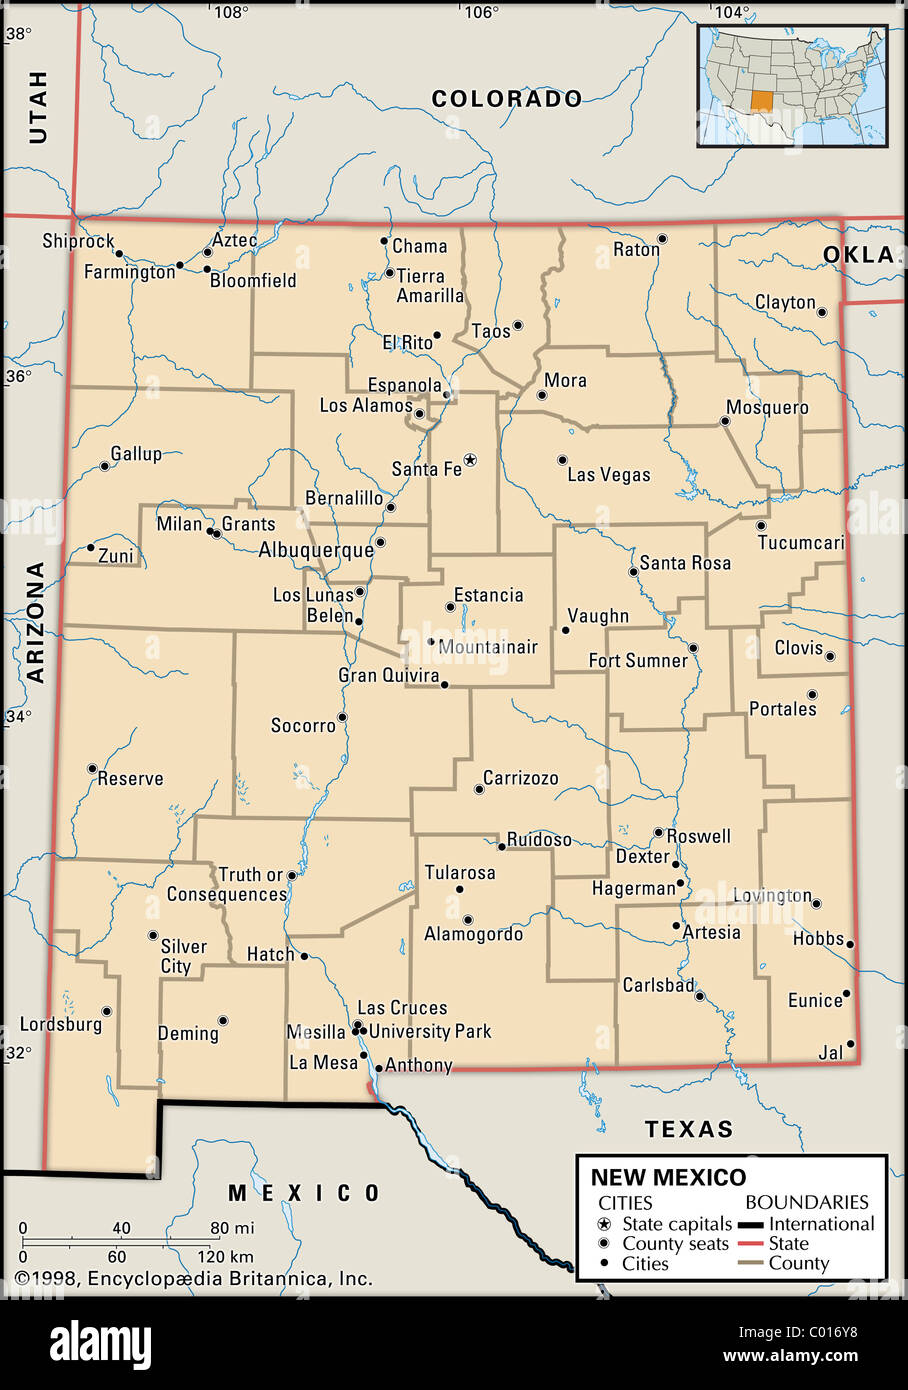 Political Map Of New Mexico Stock Photo 34448156 Alamy